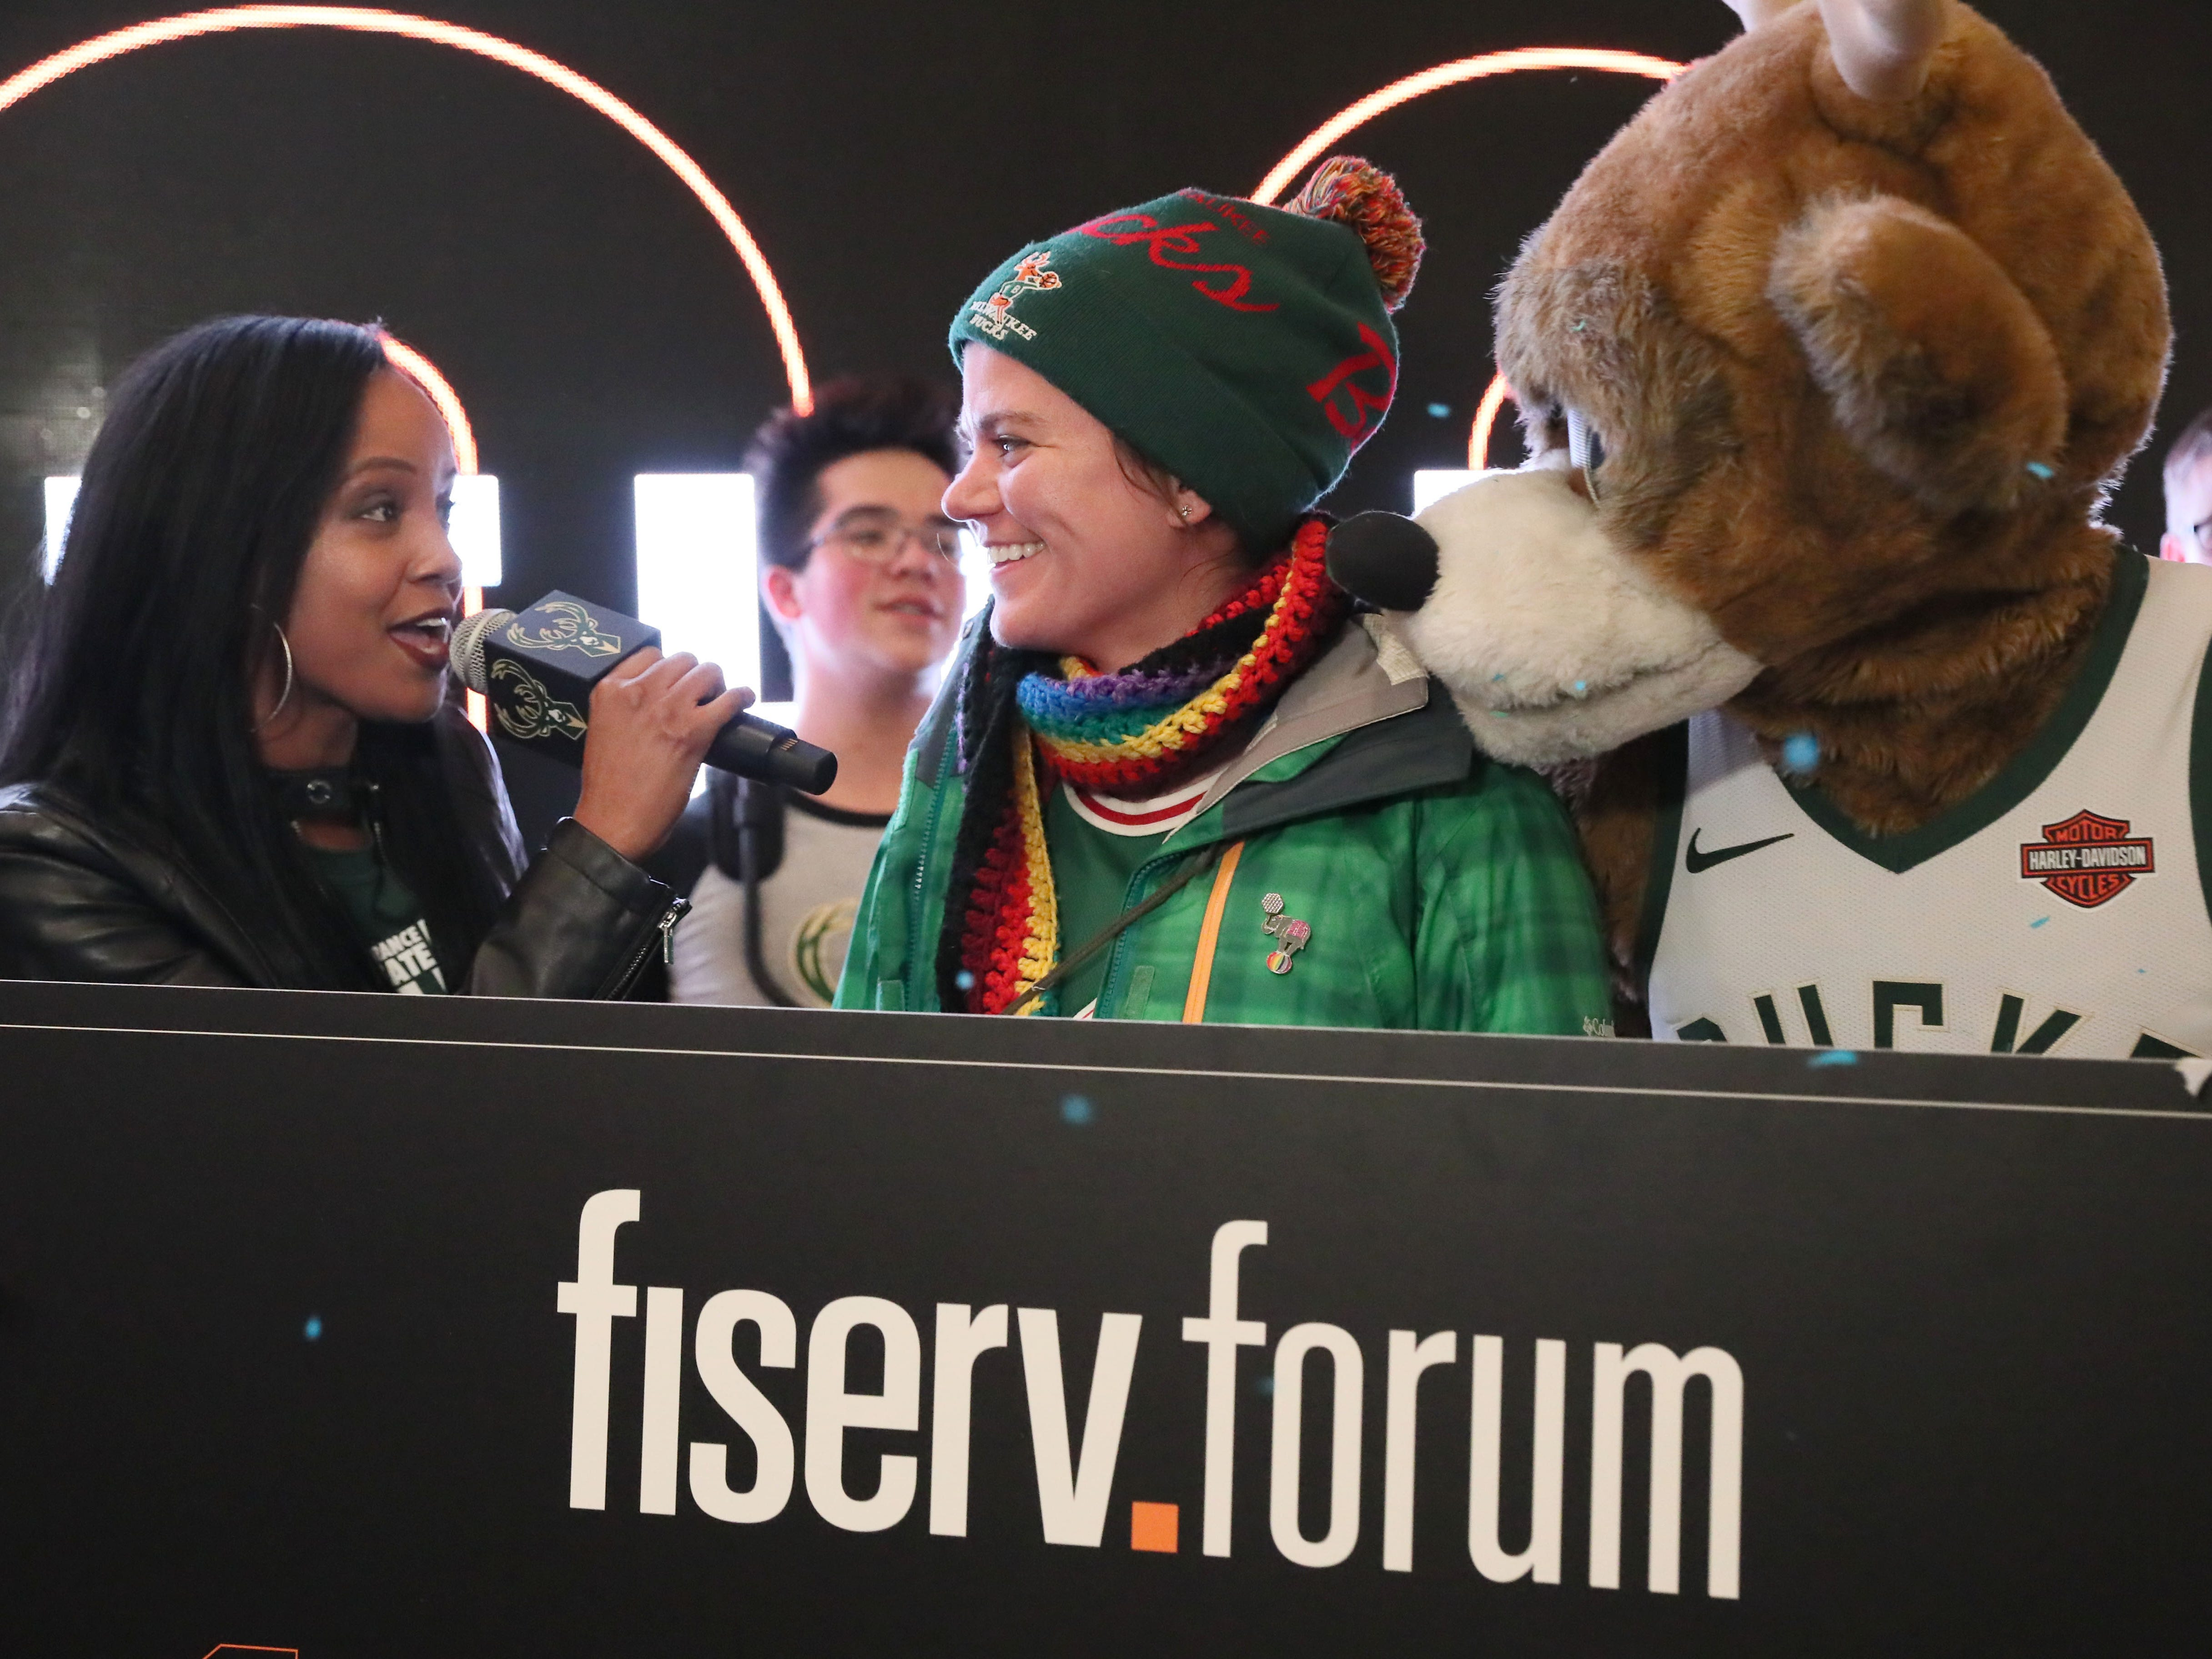 Bucks Tv personality Melanie Ricks (left) interviews the Fiserv Forum's millionth fan, Samantha Holschuh (center) of St. Francis, before the game Feb. 6 against the Washington Wizards.